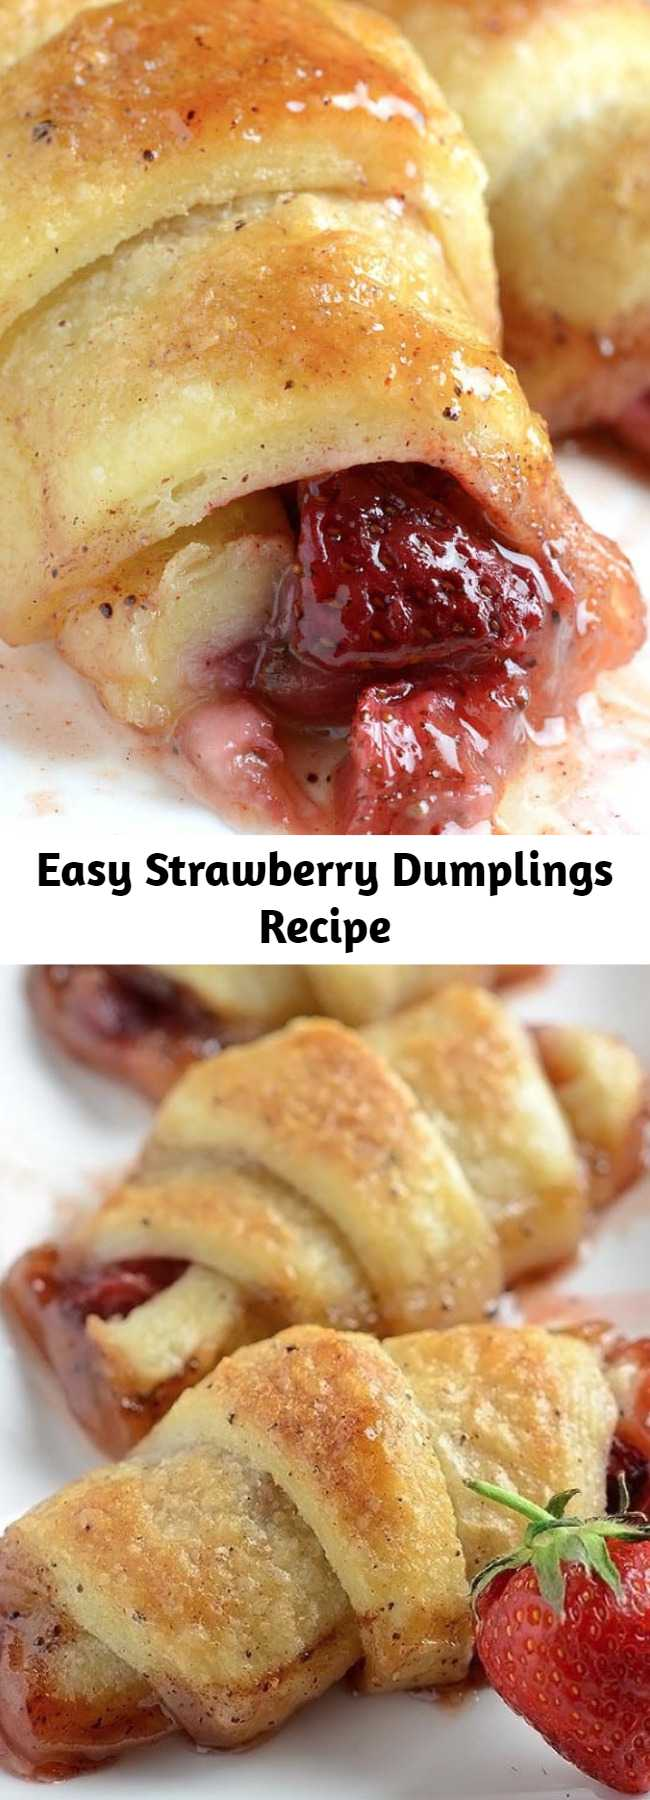 Easy Strawberry Dumplings Recipe - These Strawberry Dumplings served with a scoop of vanilla ice cream are perfect for spring and summer. Crescent rolls filled with strawberries and baked in butter & brown sugar sauce. They're the perfect balance between soft and crispy!